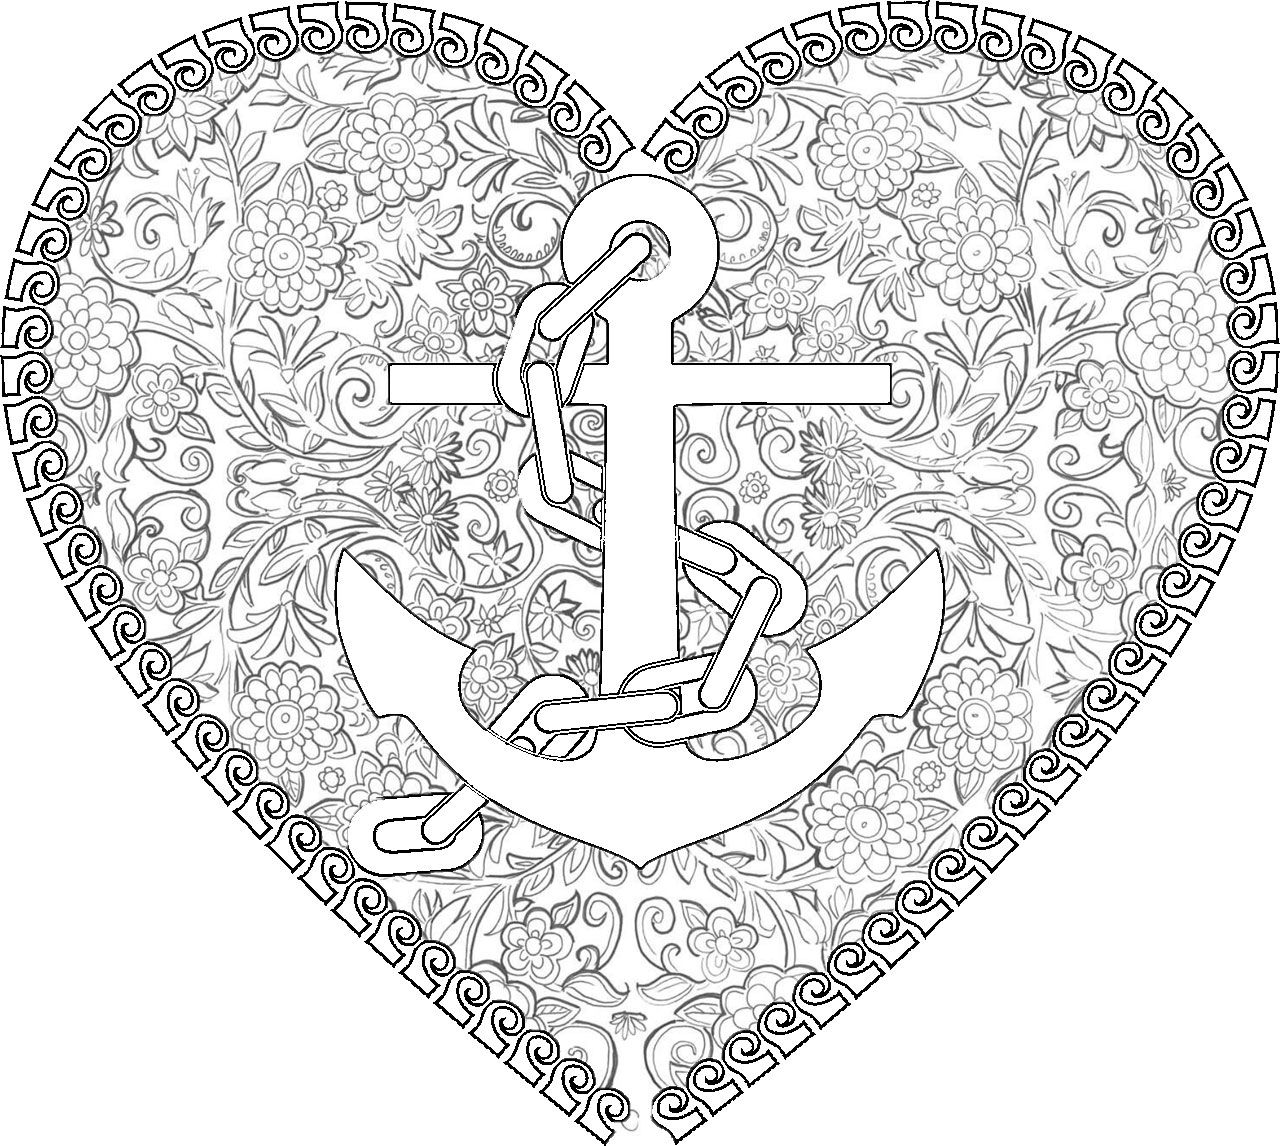 printable anchor coloring pages - photo#6